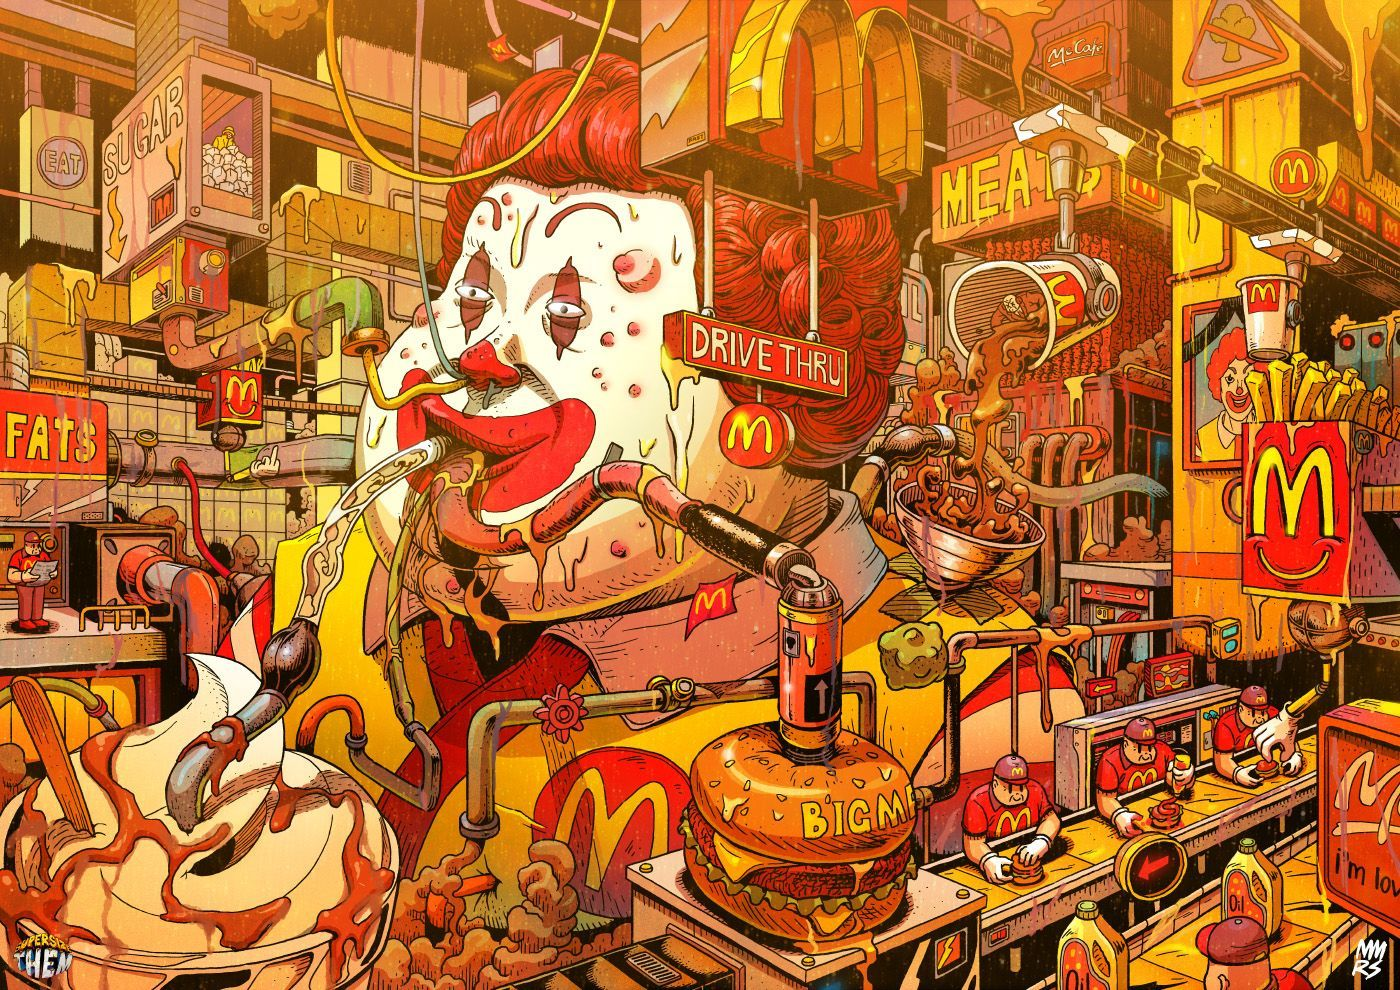 De Super Size Me A Big Brother Les Illustrations De Mr